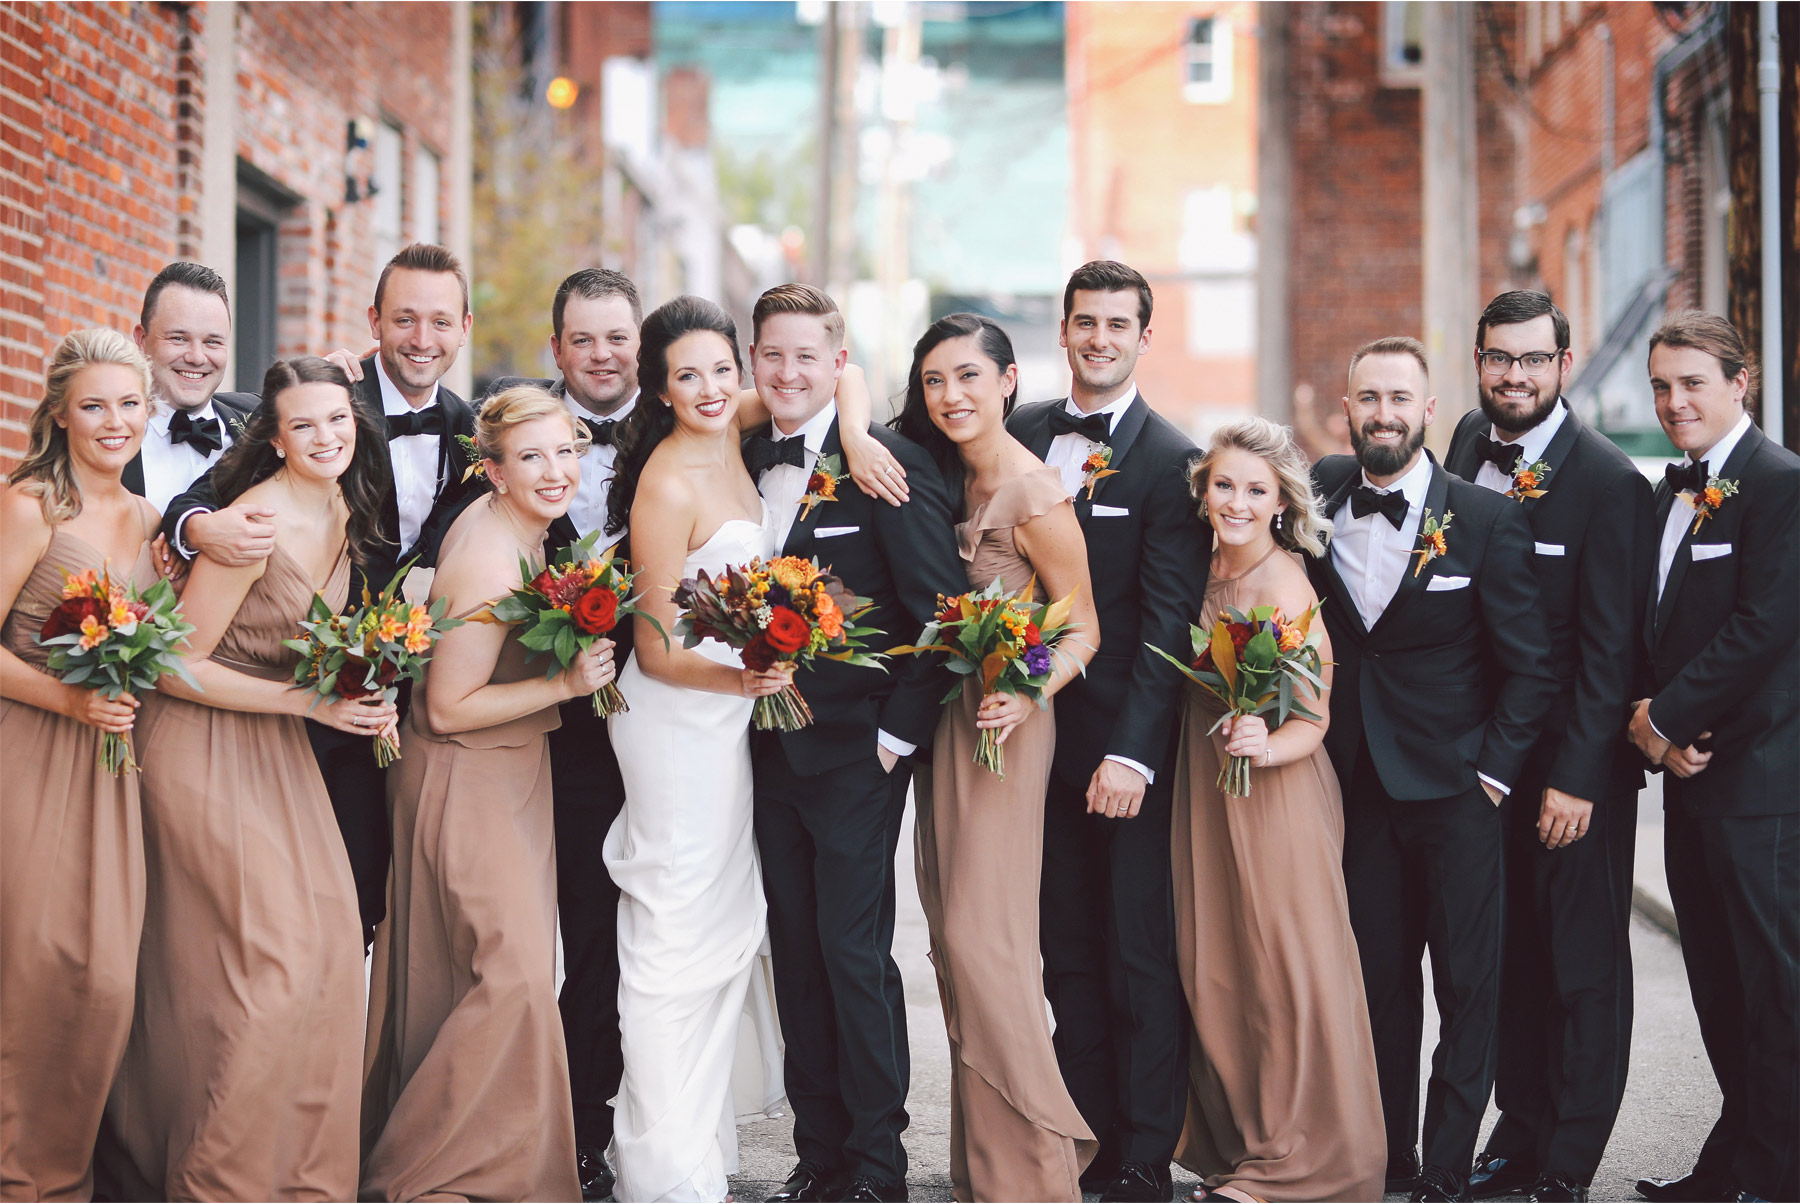 12-Kansas-City-Missouri-Destination-Wedding-Photography-by-Vick-Photography-Wedding-Party-Group-Downtown-Carly-and-Kenny.jpg